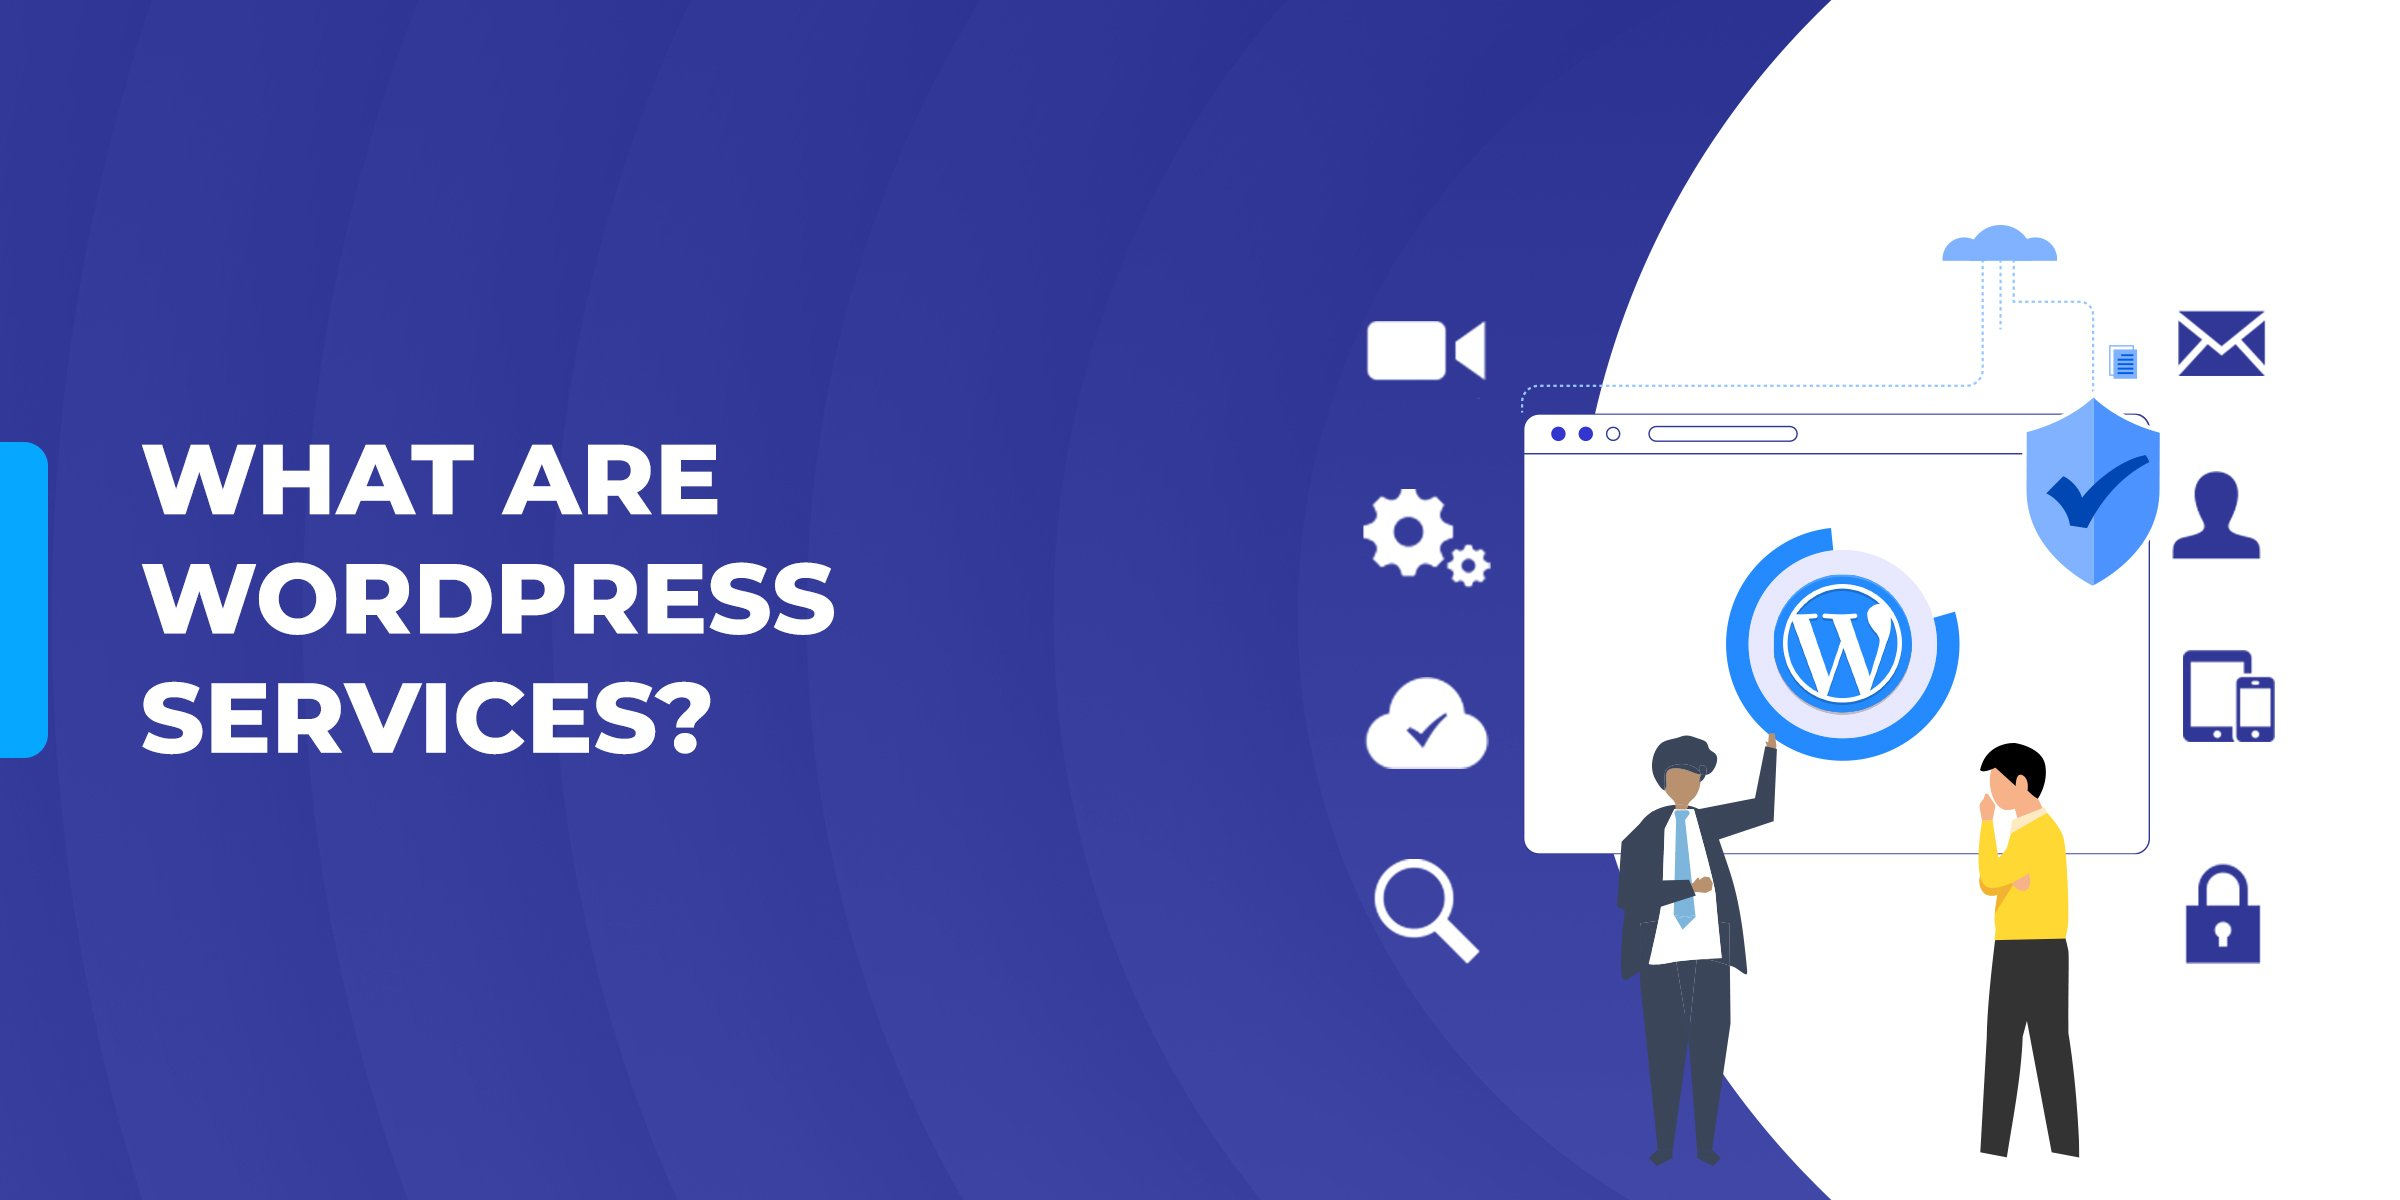 What are WordPress services